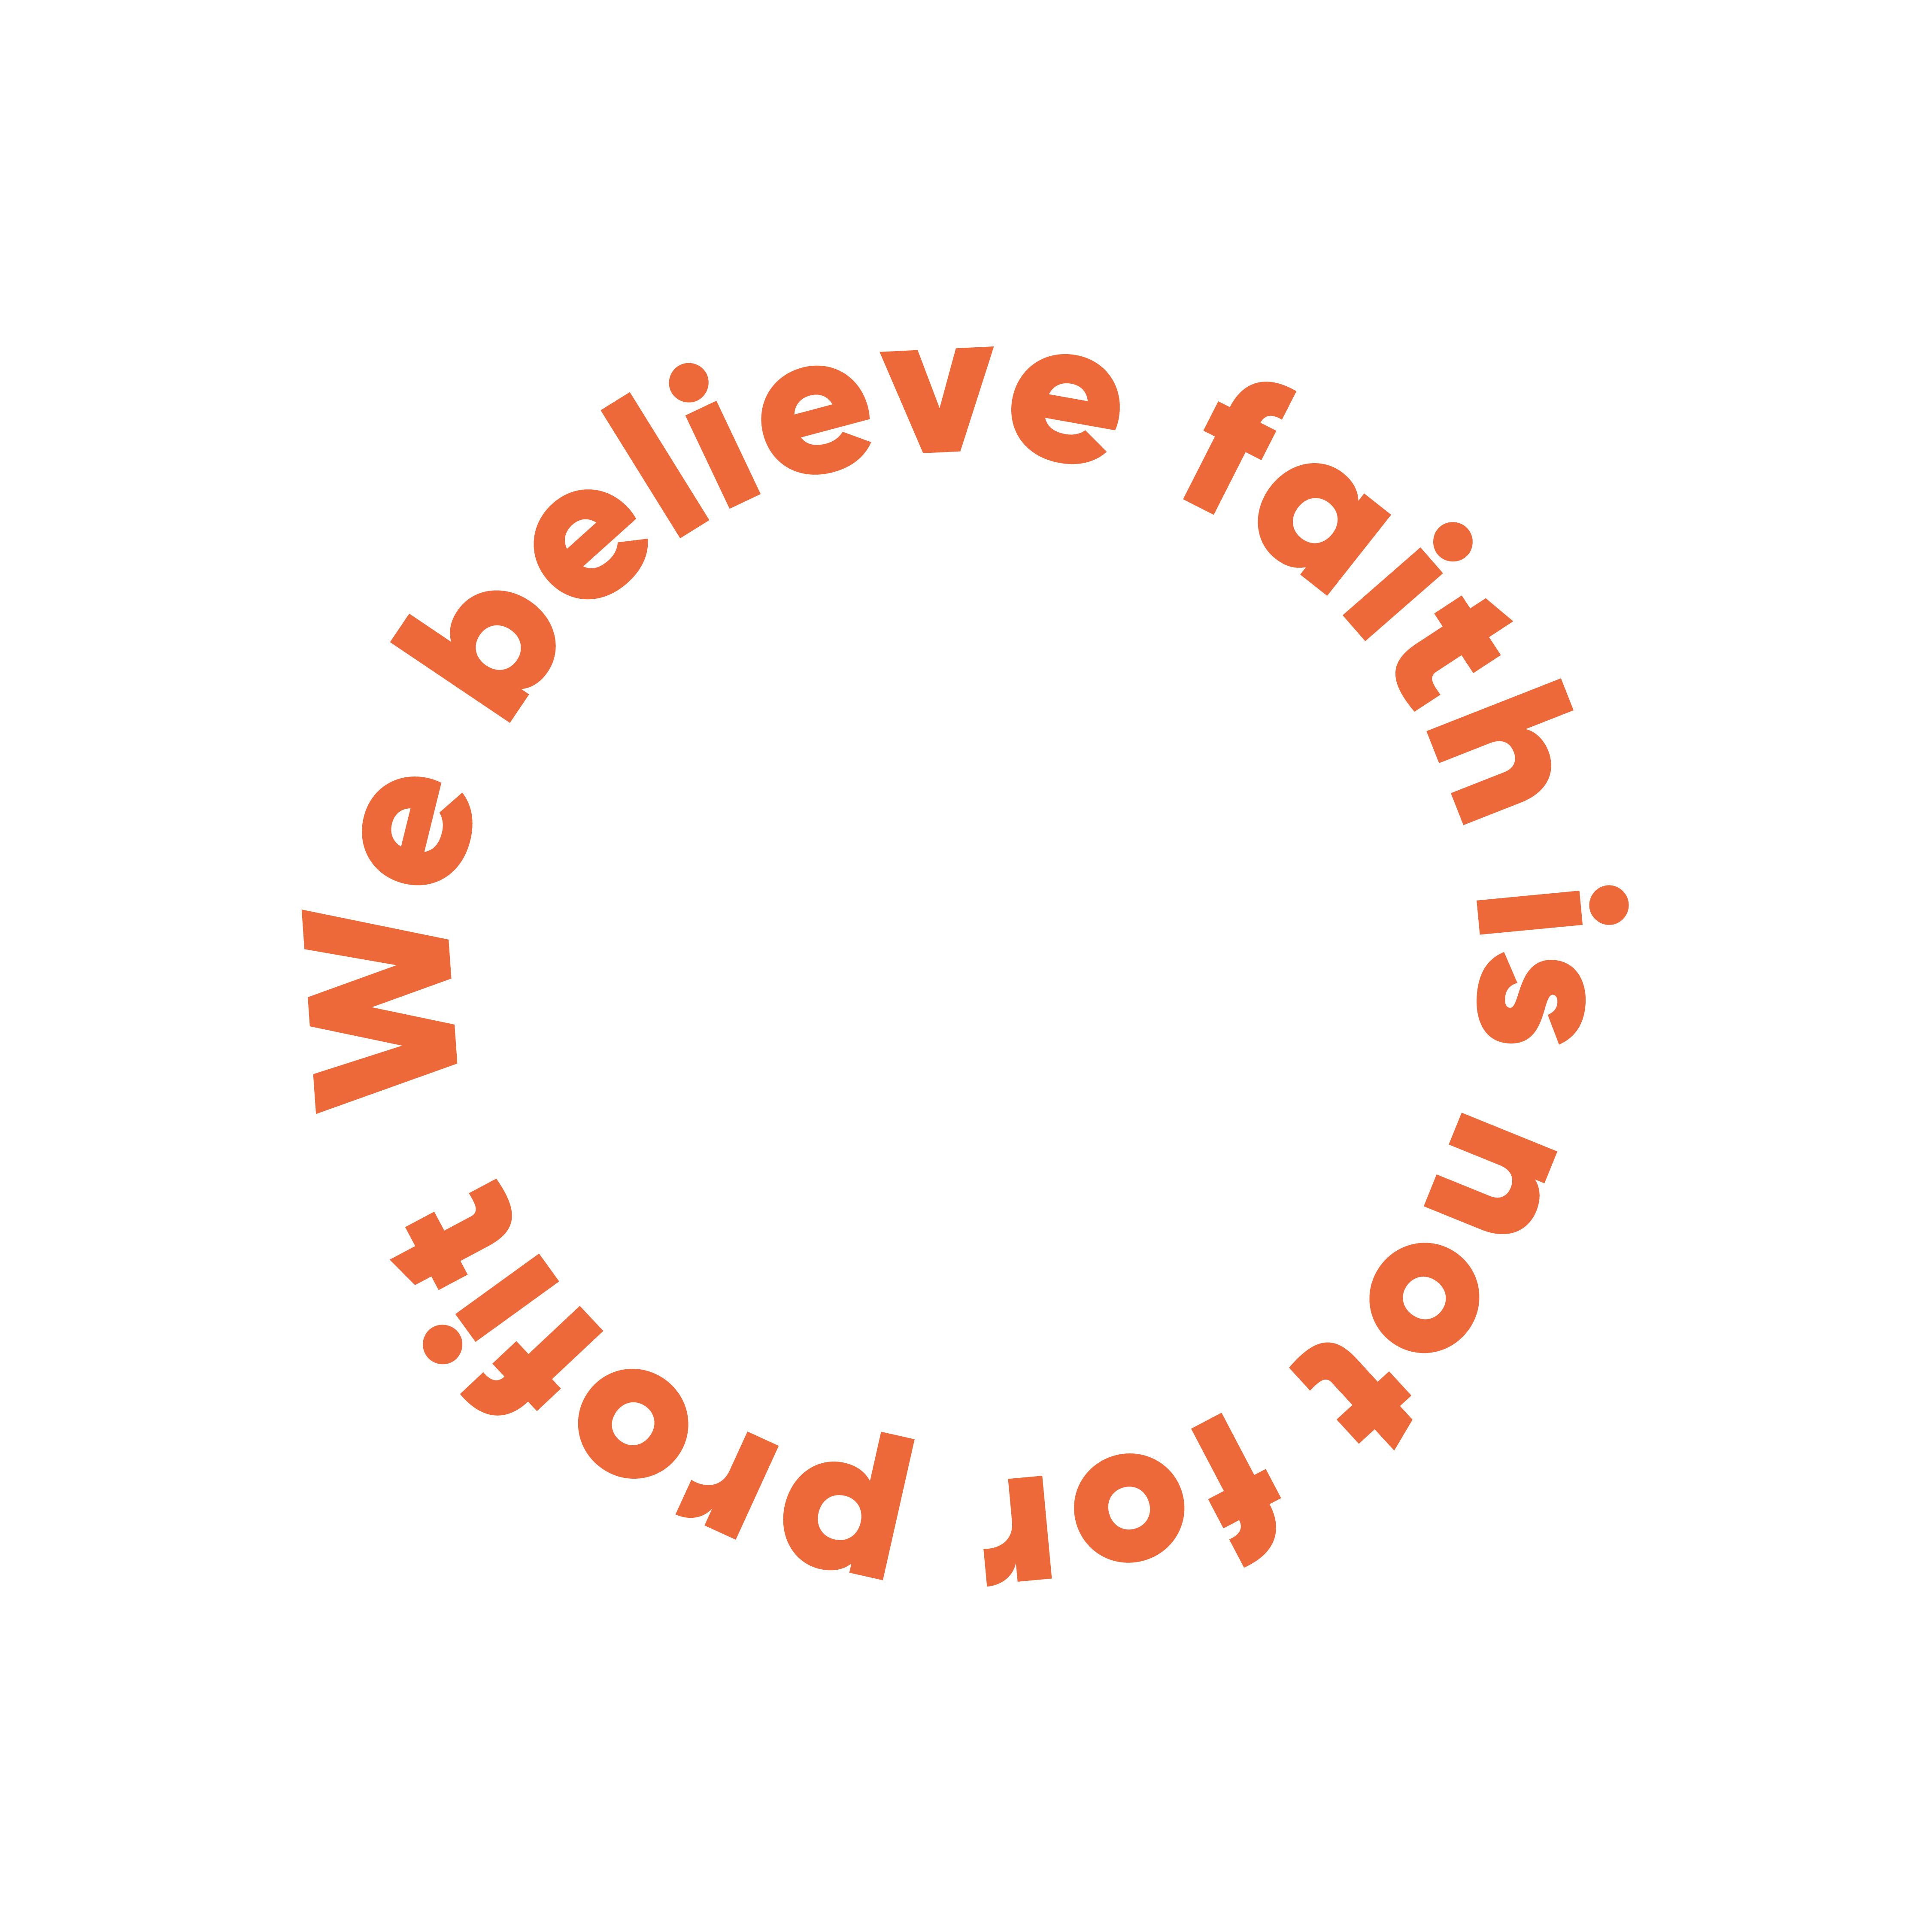 we believe faith is not for profit